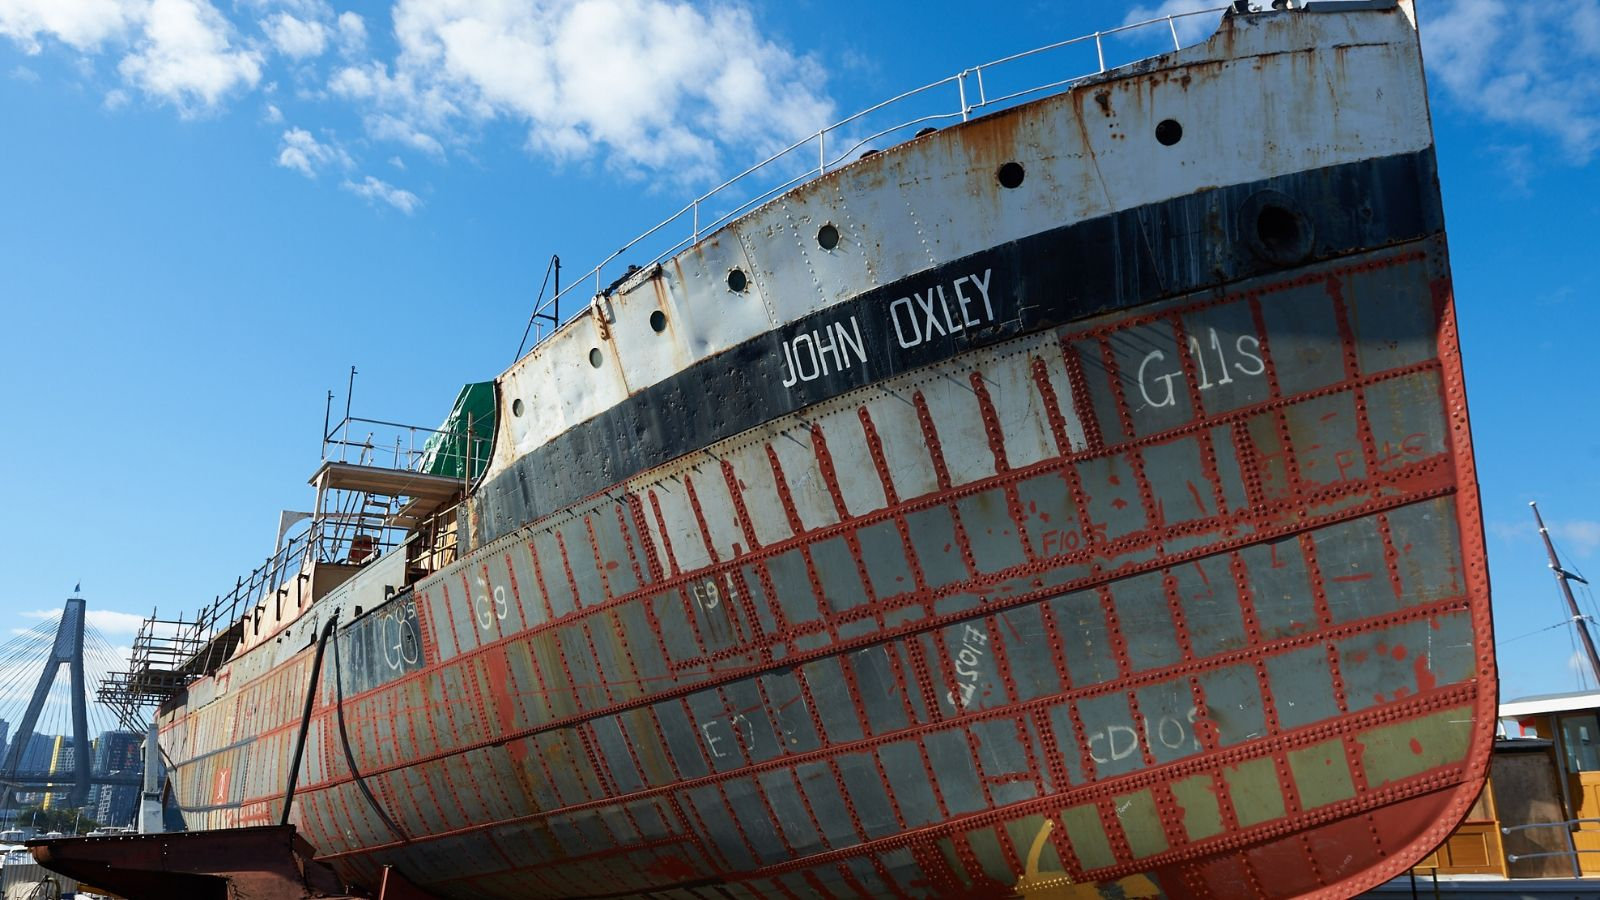 john oxley ship